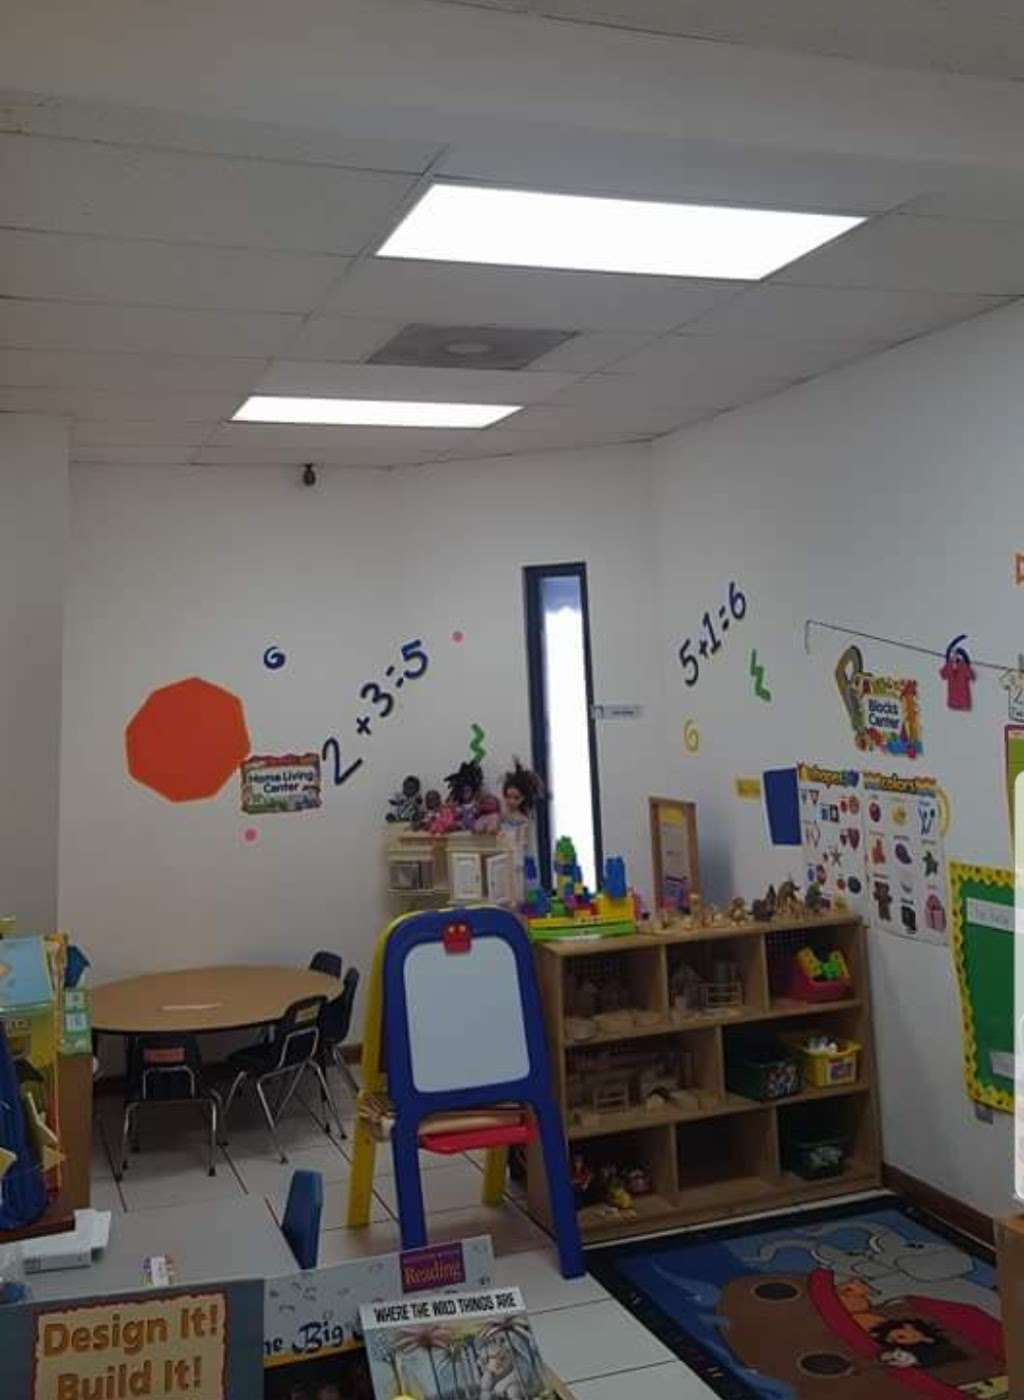 LITTLE STARZ ACADEMY - school  | Photo 10 of 10 | Address: 3896 NW 167th St, Opa-locka, FL 33054, USA | Phone: (305) 625-3599